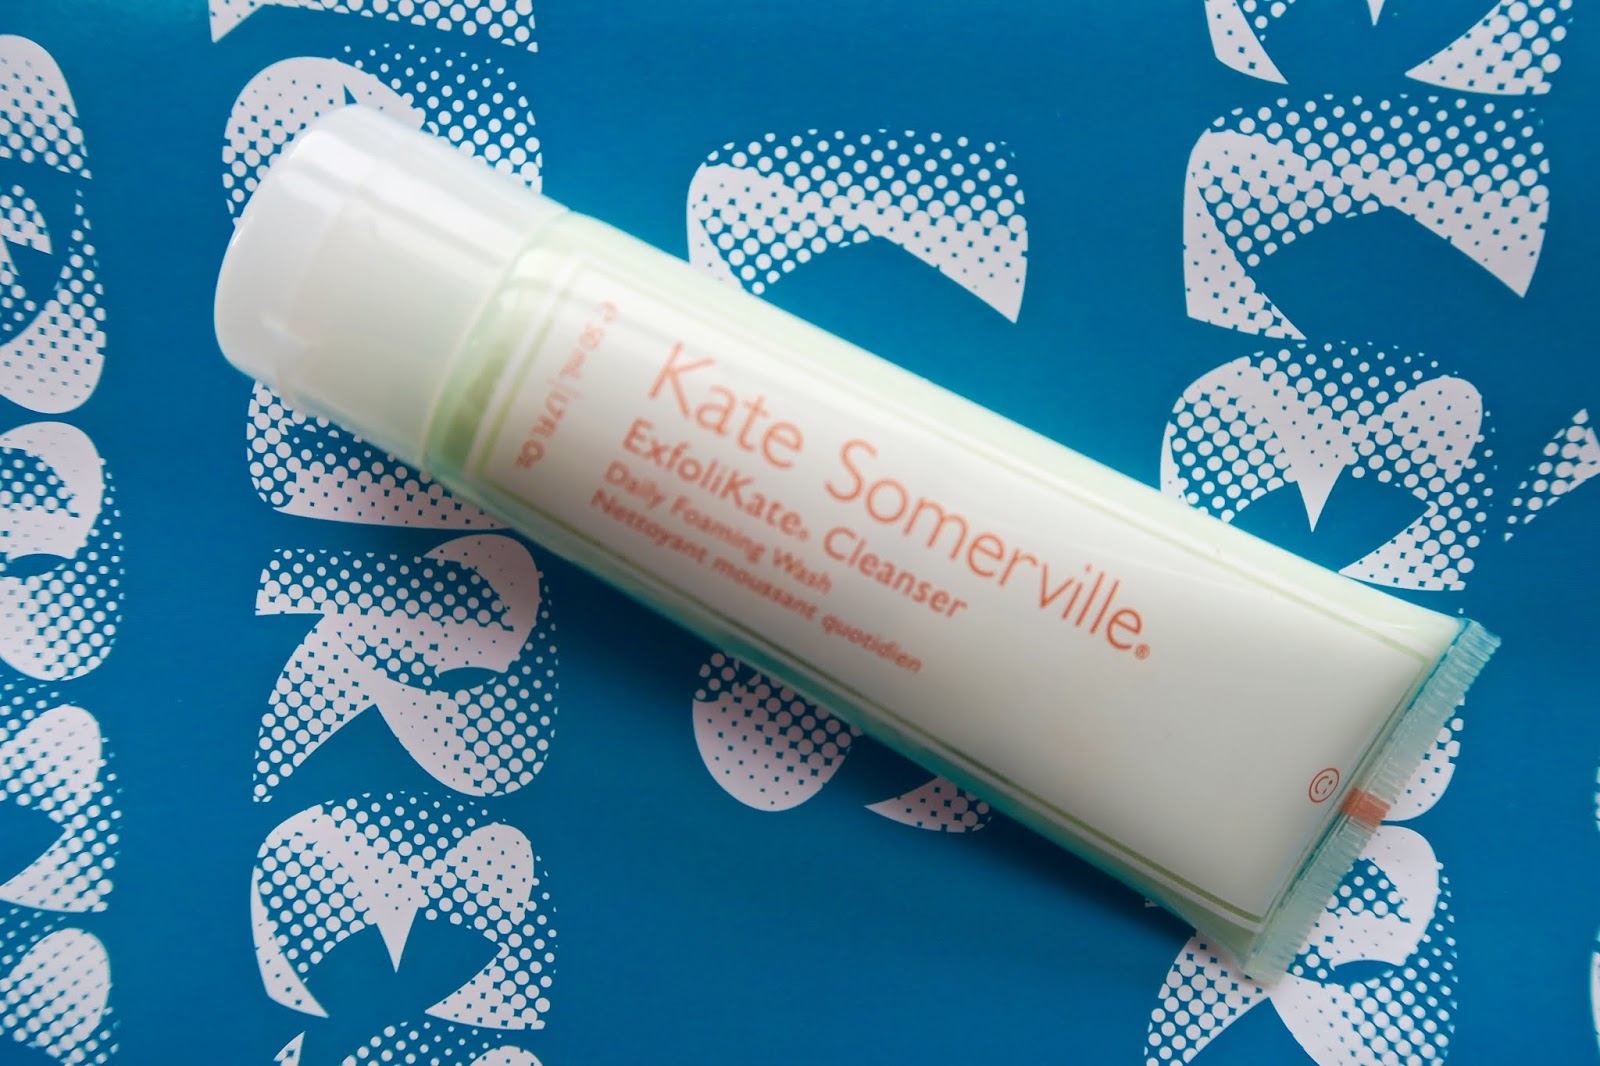 Kate Somerville ExfoliKate Cleanser Review